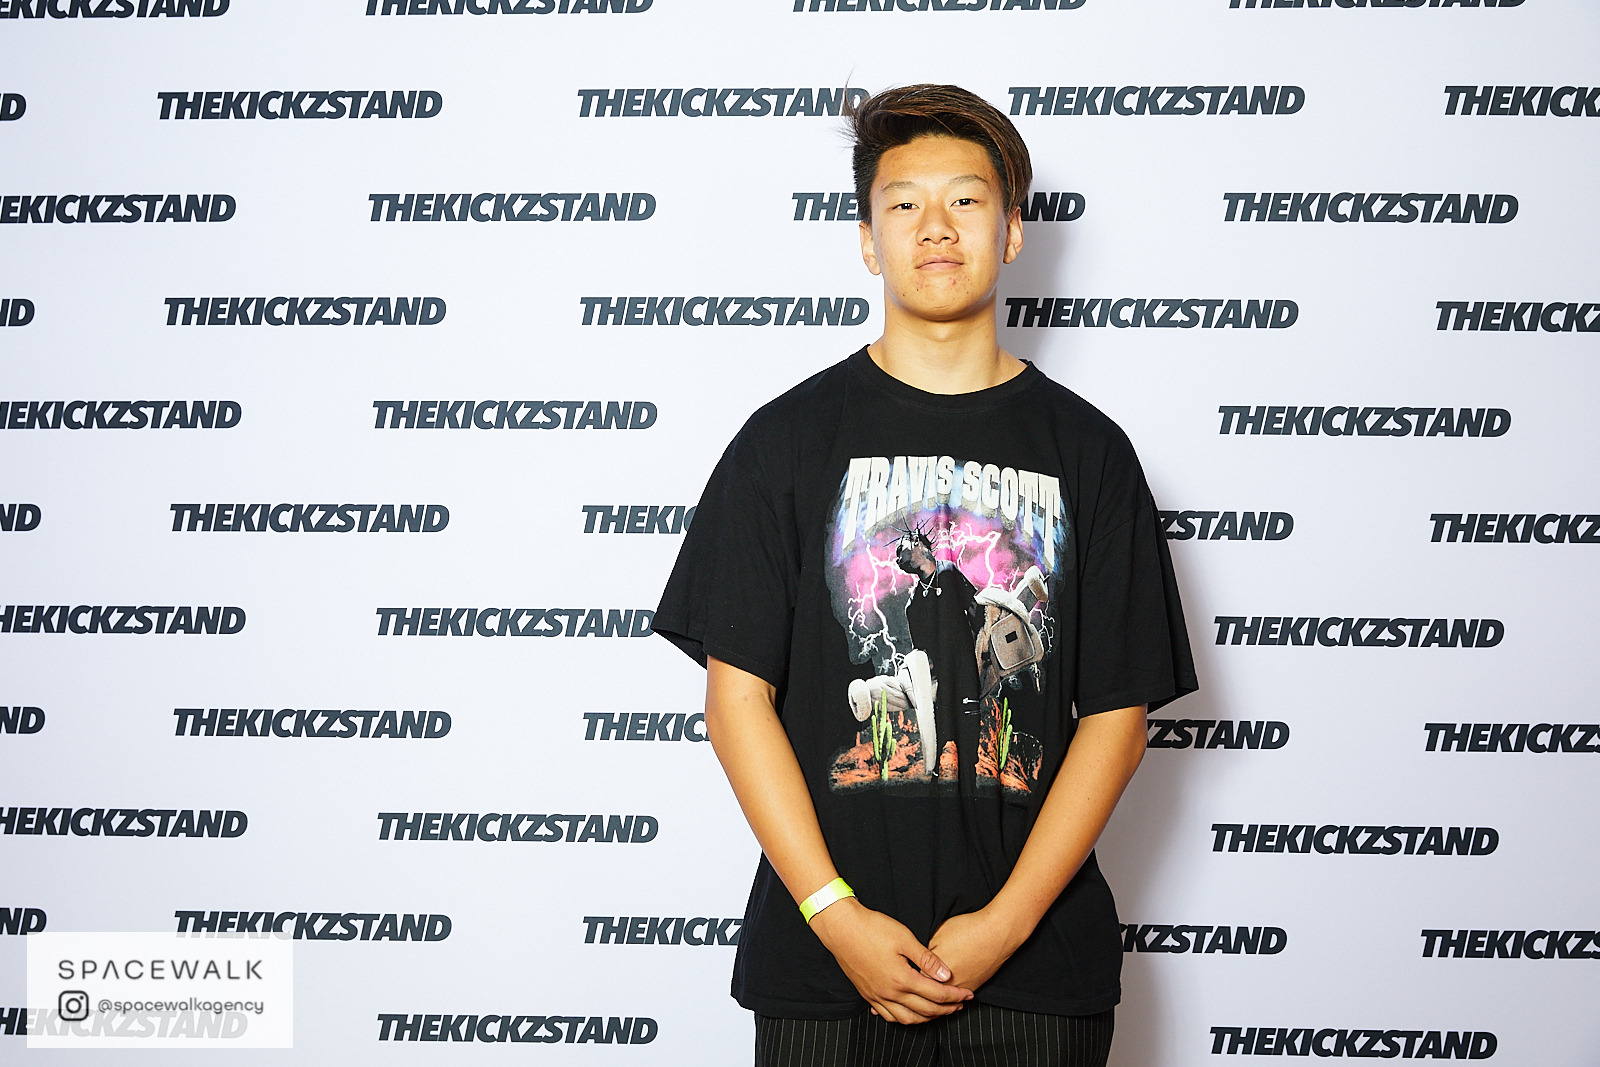 KICKZSTAND_BOOTH_095